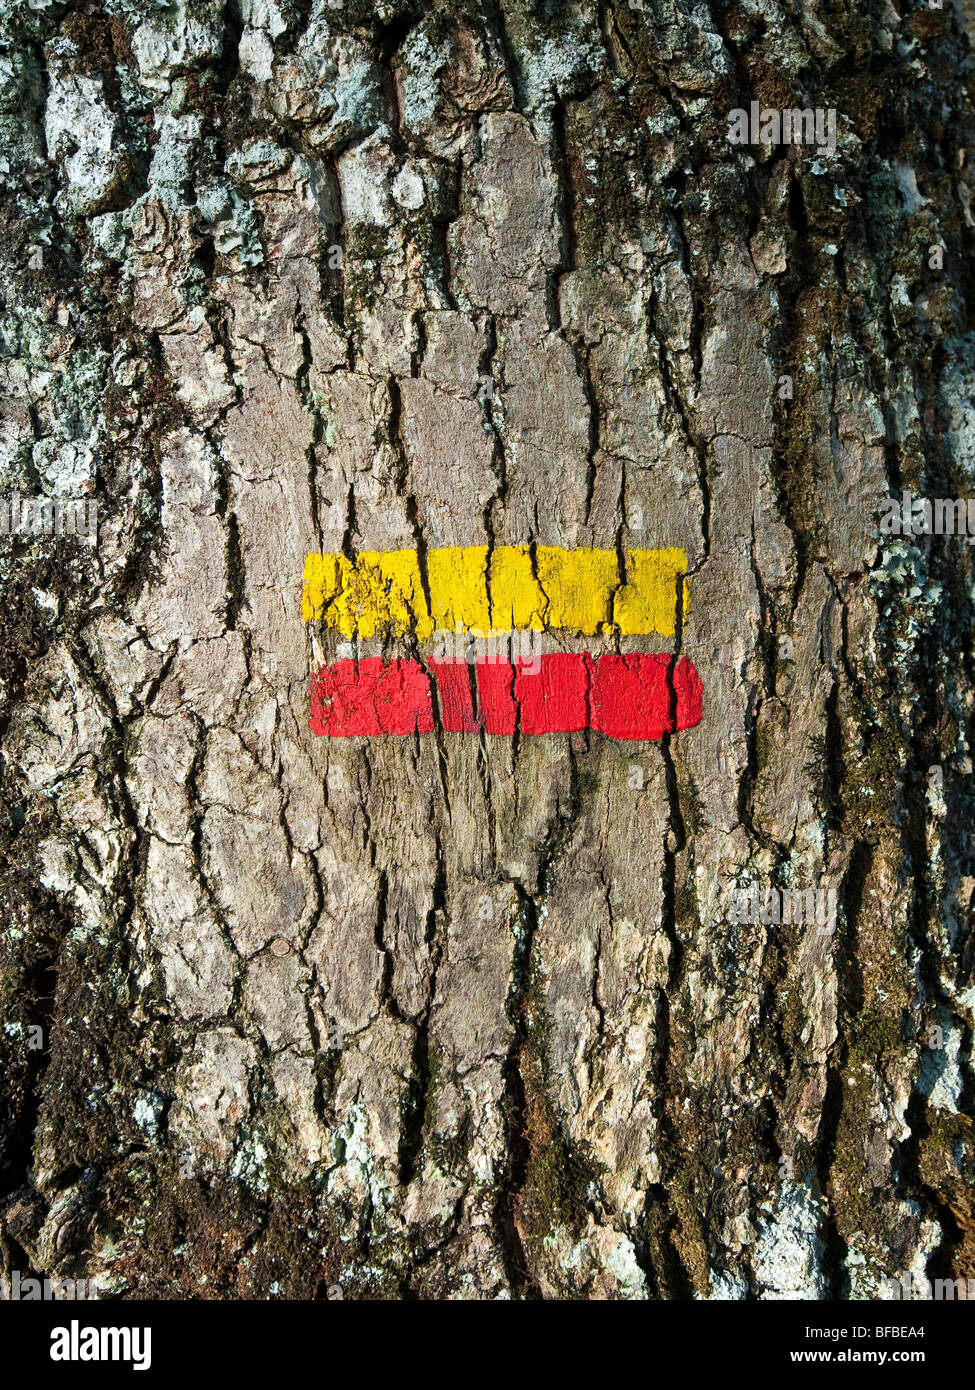 Public footpath right-of-way markers on Oak tree trunk - France. - Stock Image